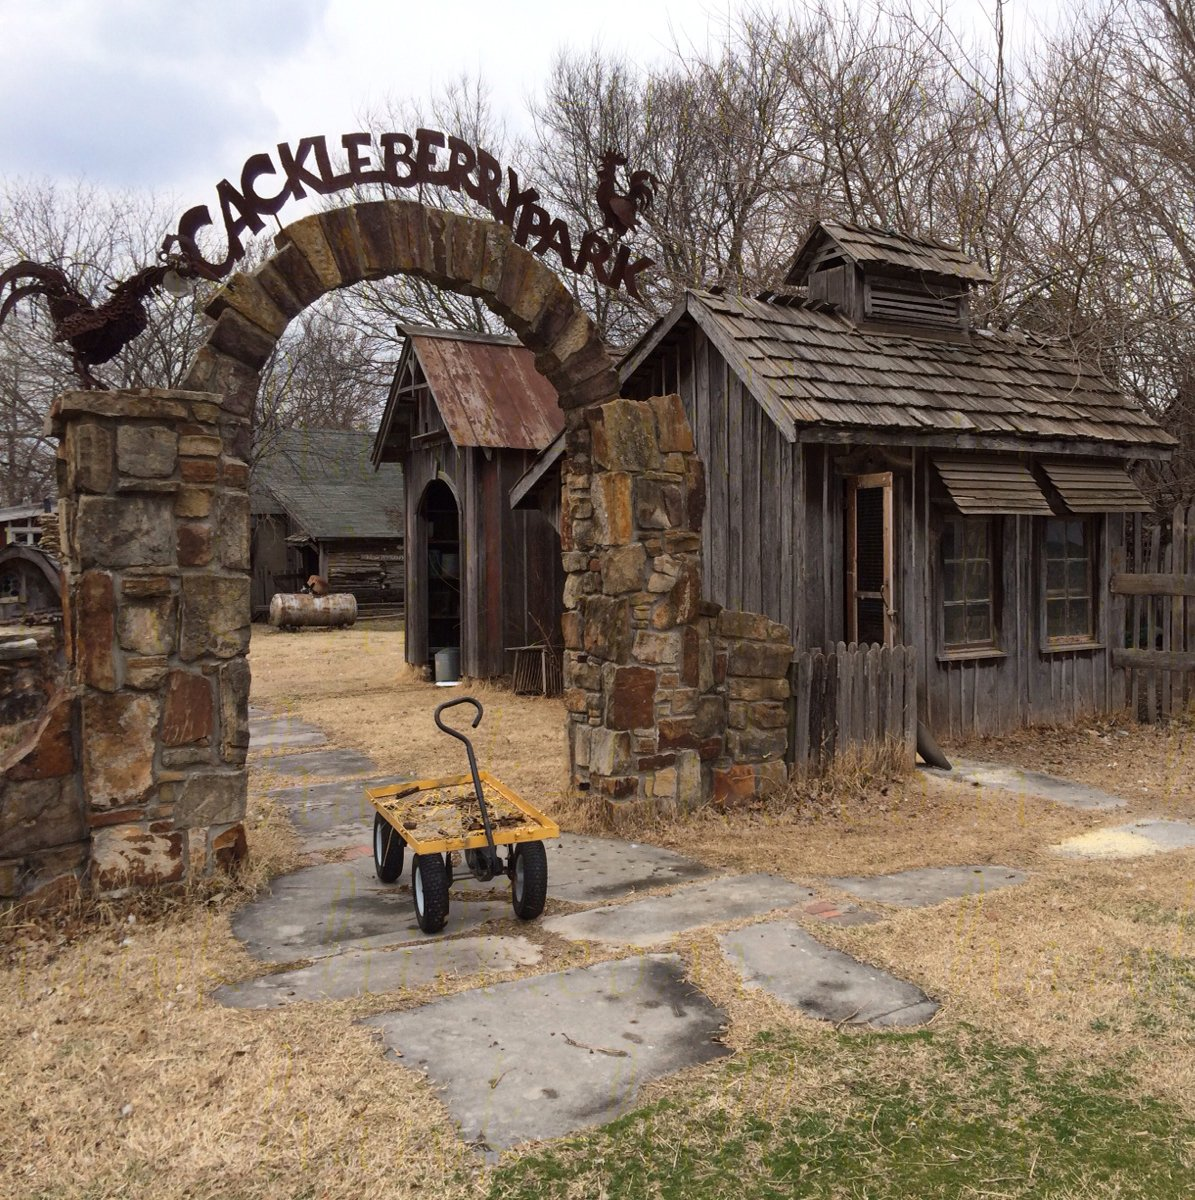 Rustic chicken coop with metal sign